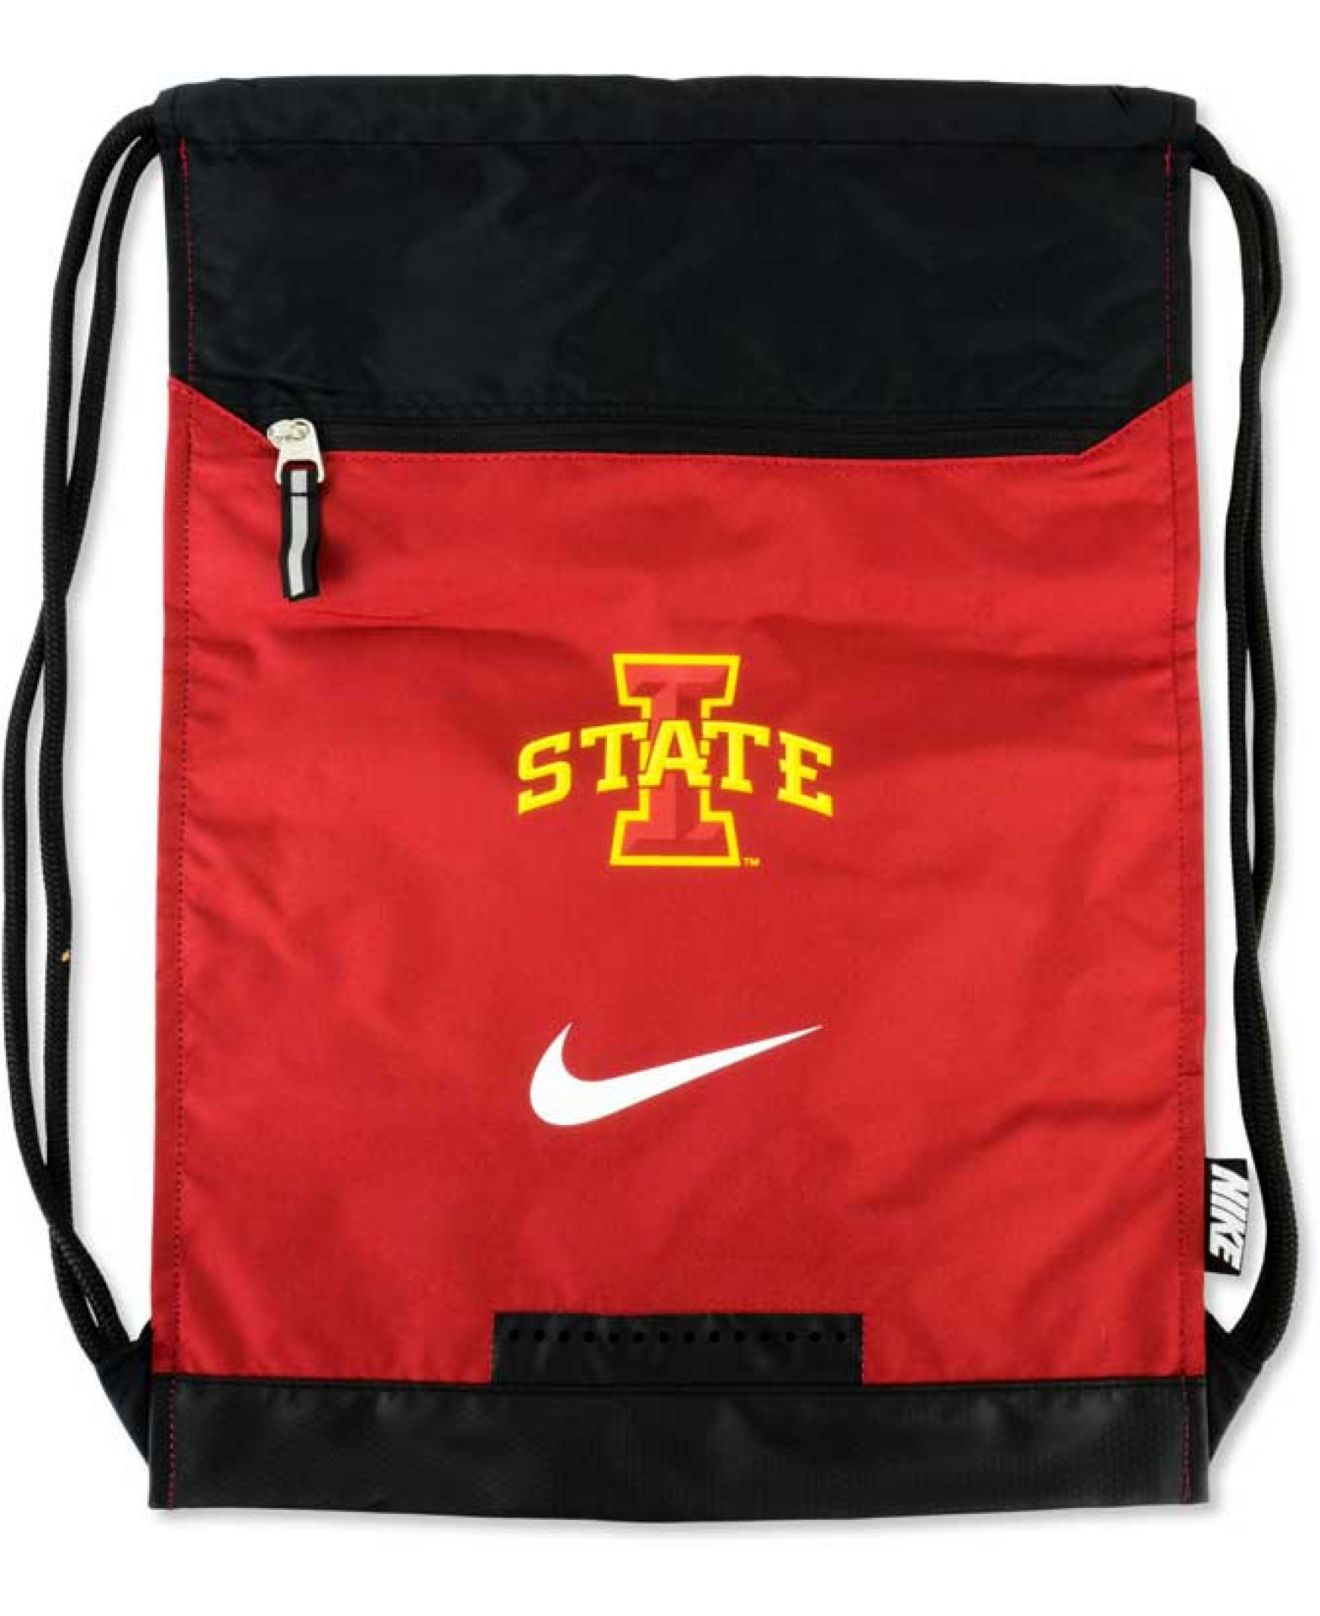 9726951d1c59 Nike Gym Bags For Mens